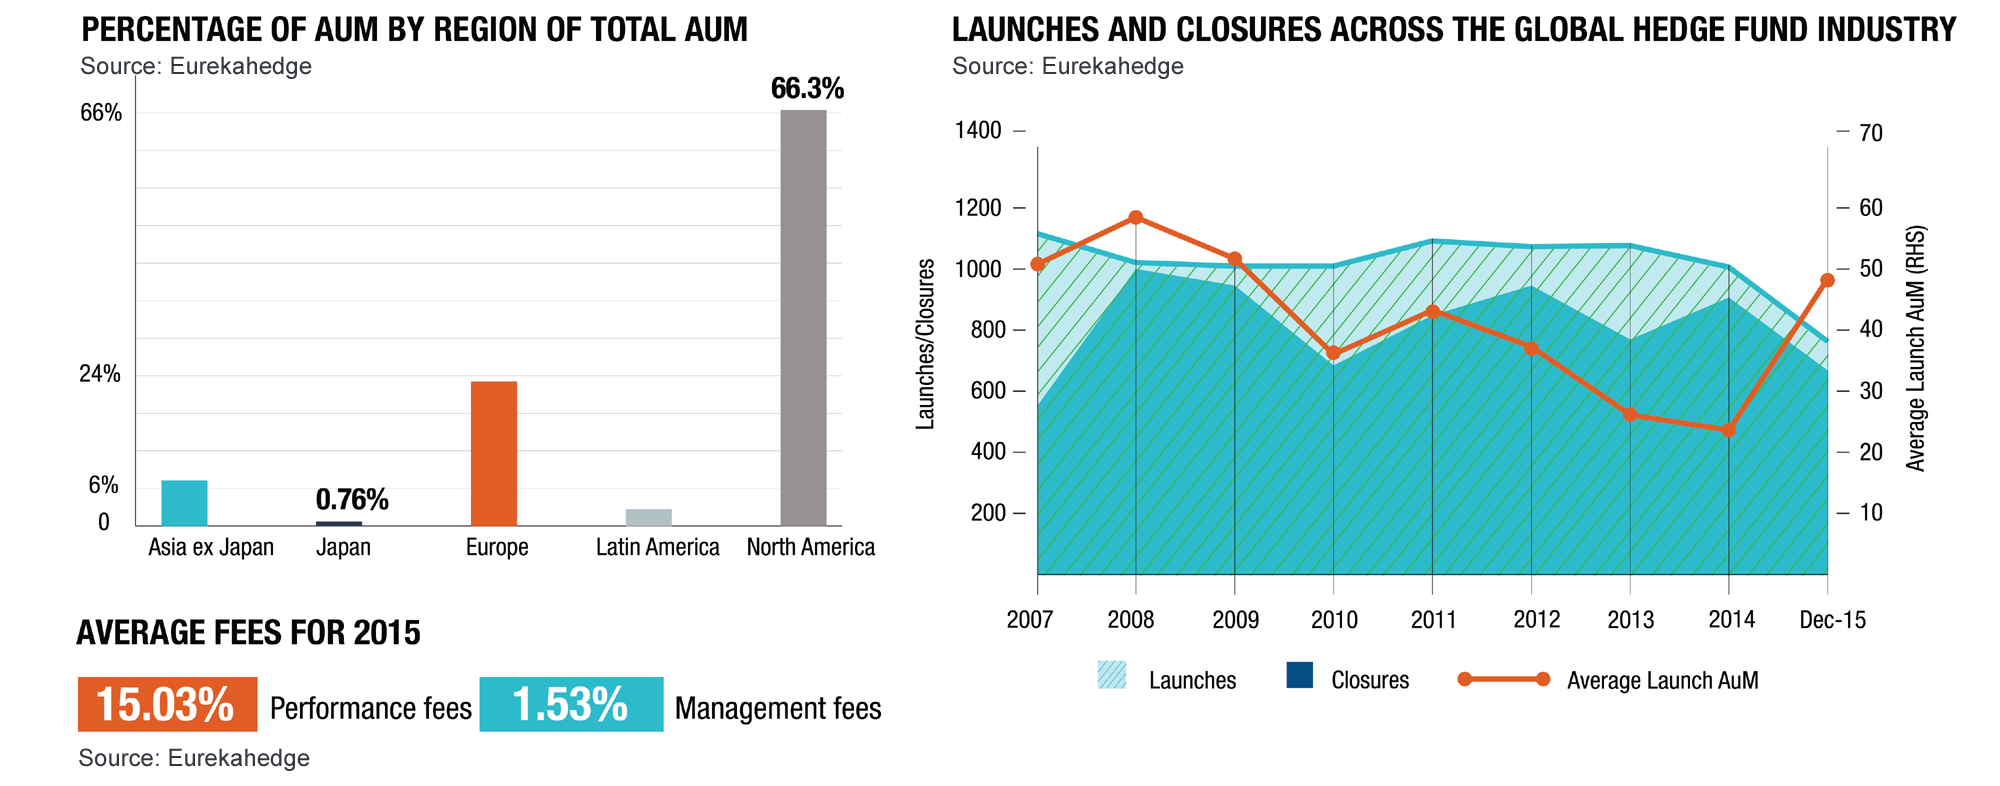 Hedge Funds 2015 Overview Infographic - Hedge fund AUM, launches and closures across the global hedge fund industry